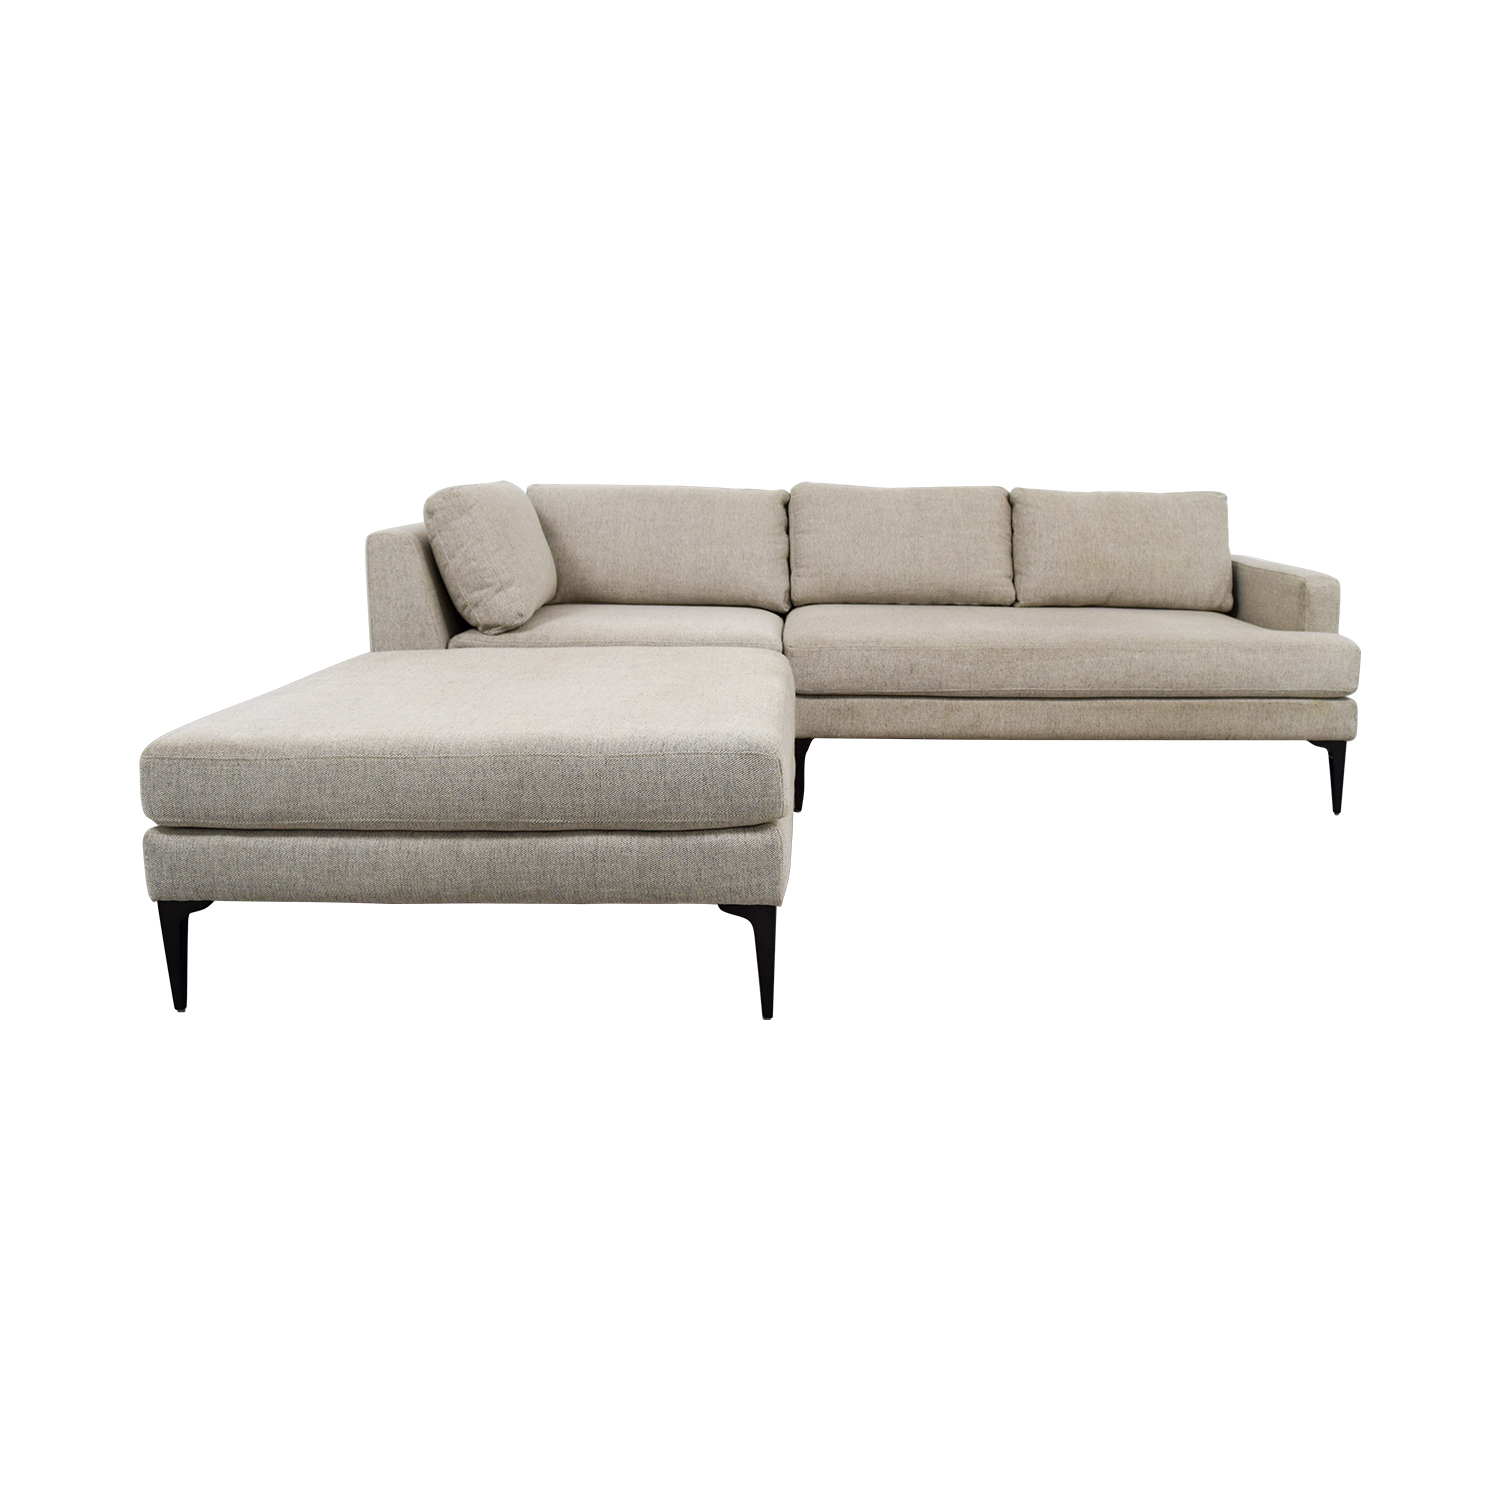 Sofa sectionals near me radley 5piece fabric chaise for Couches near me